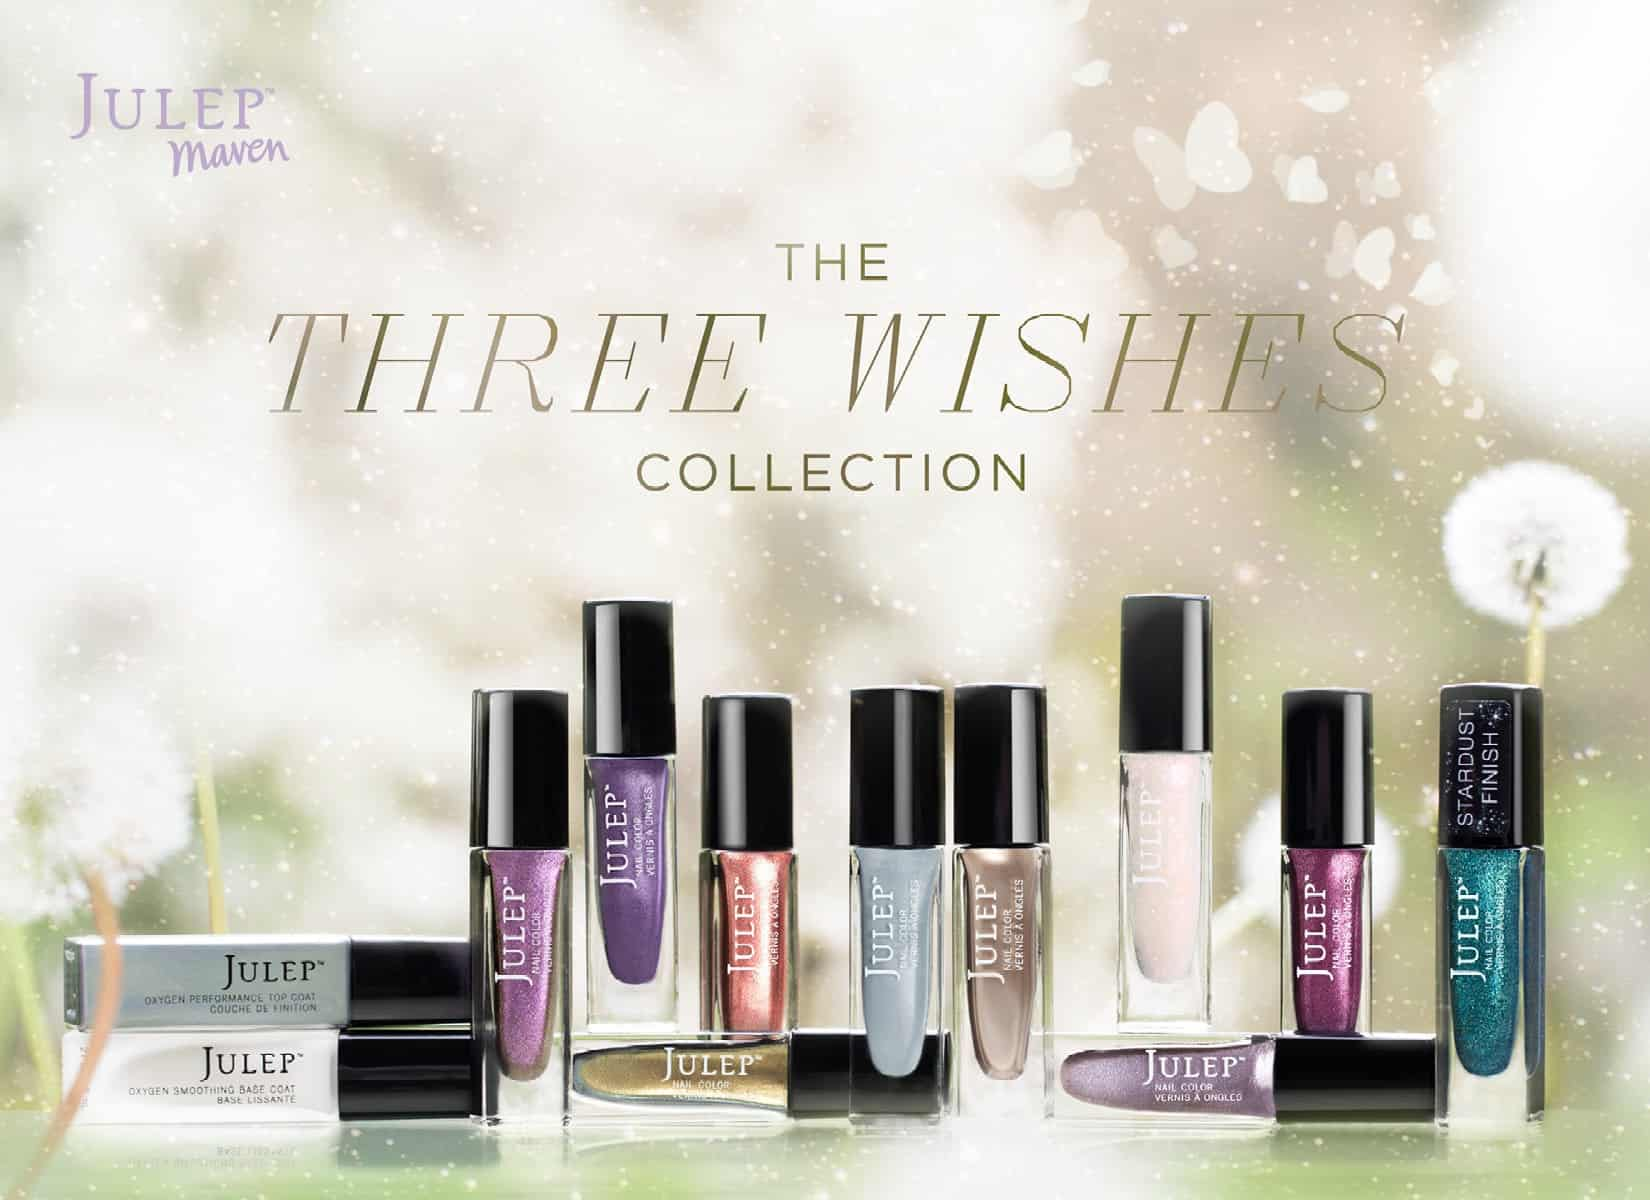 June 2014 Julep Maven Three Wishes Collection